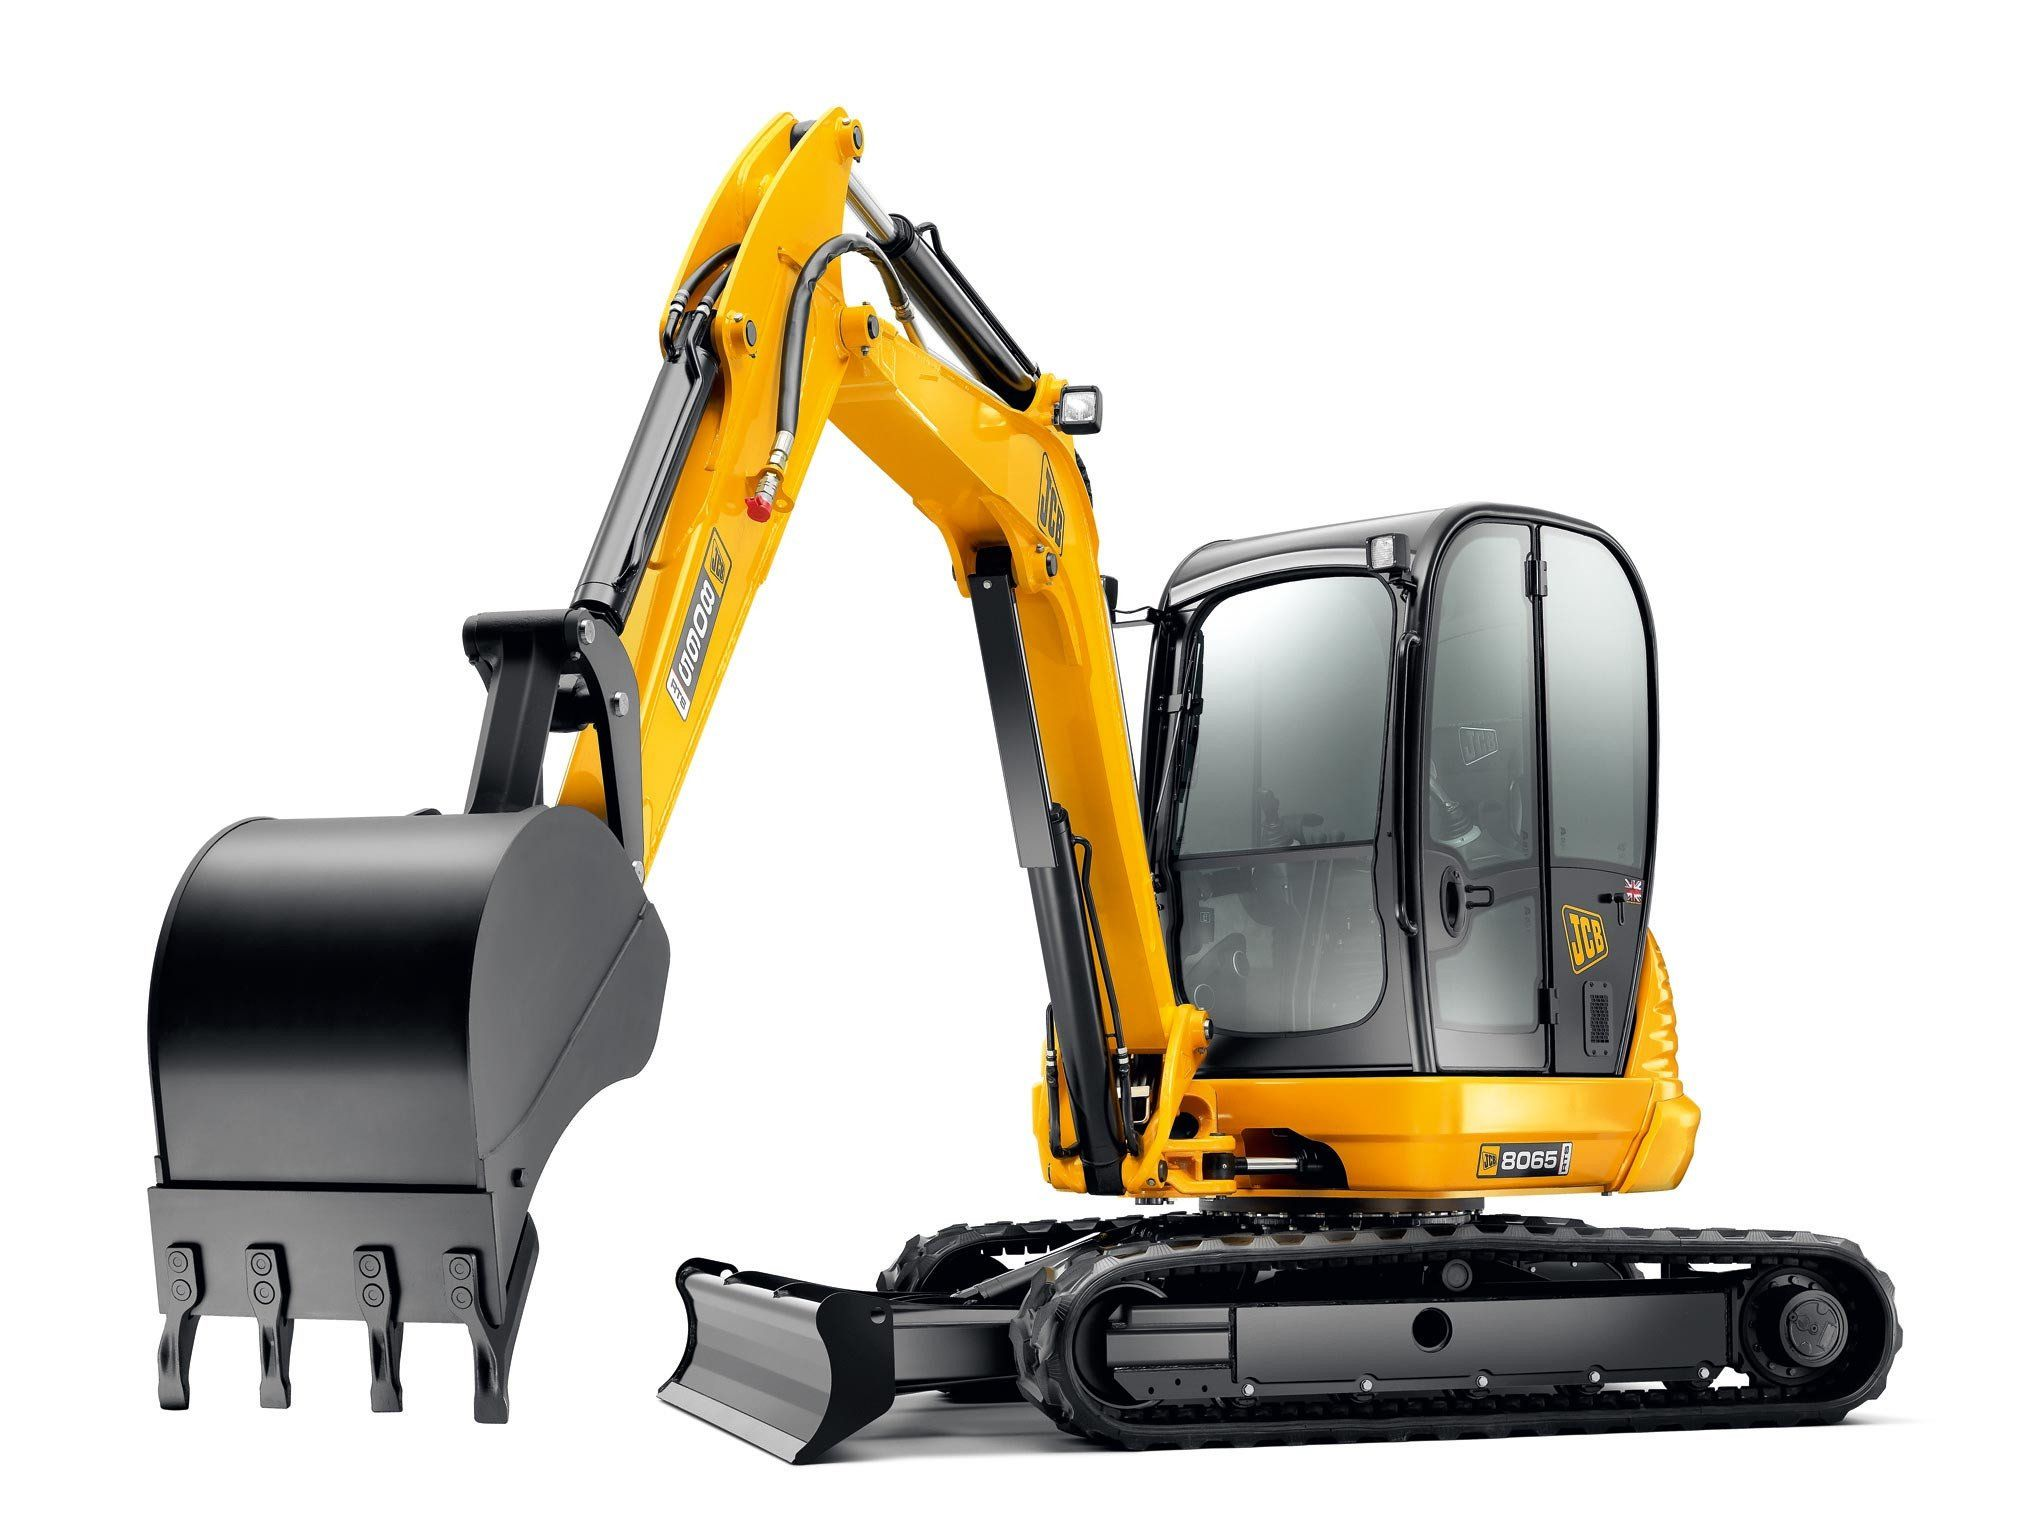 medium resolution of this is the most complete service repair manual for the jcb 8055 8065 midi excavator service repair manual can come in handy especially when you have to do